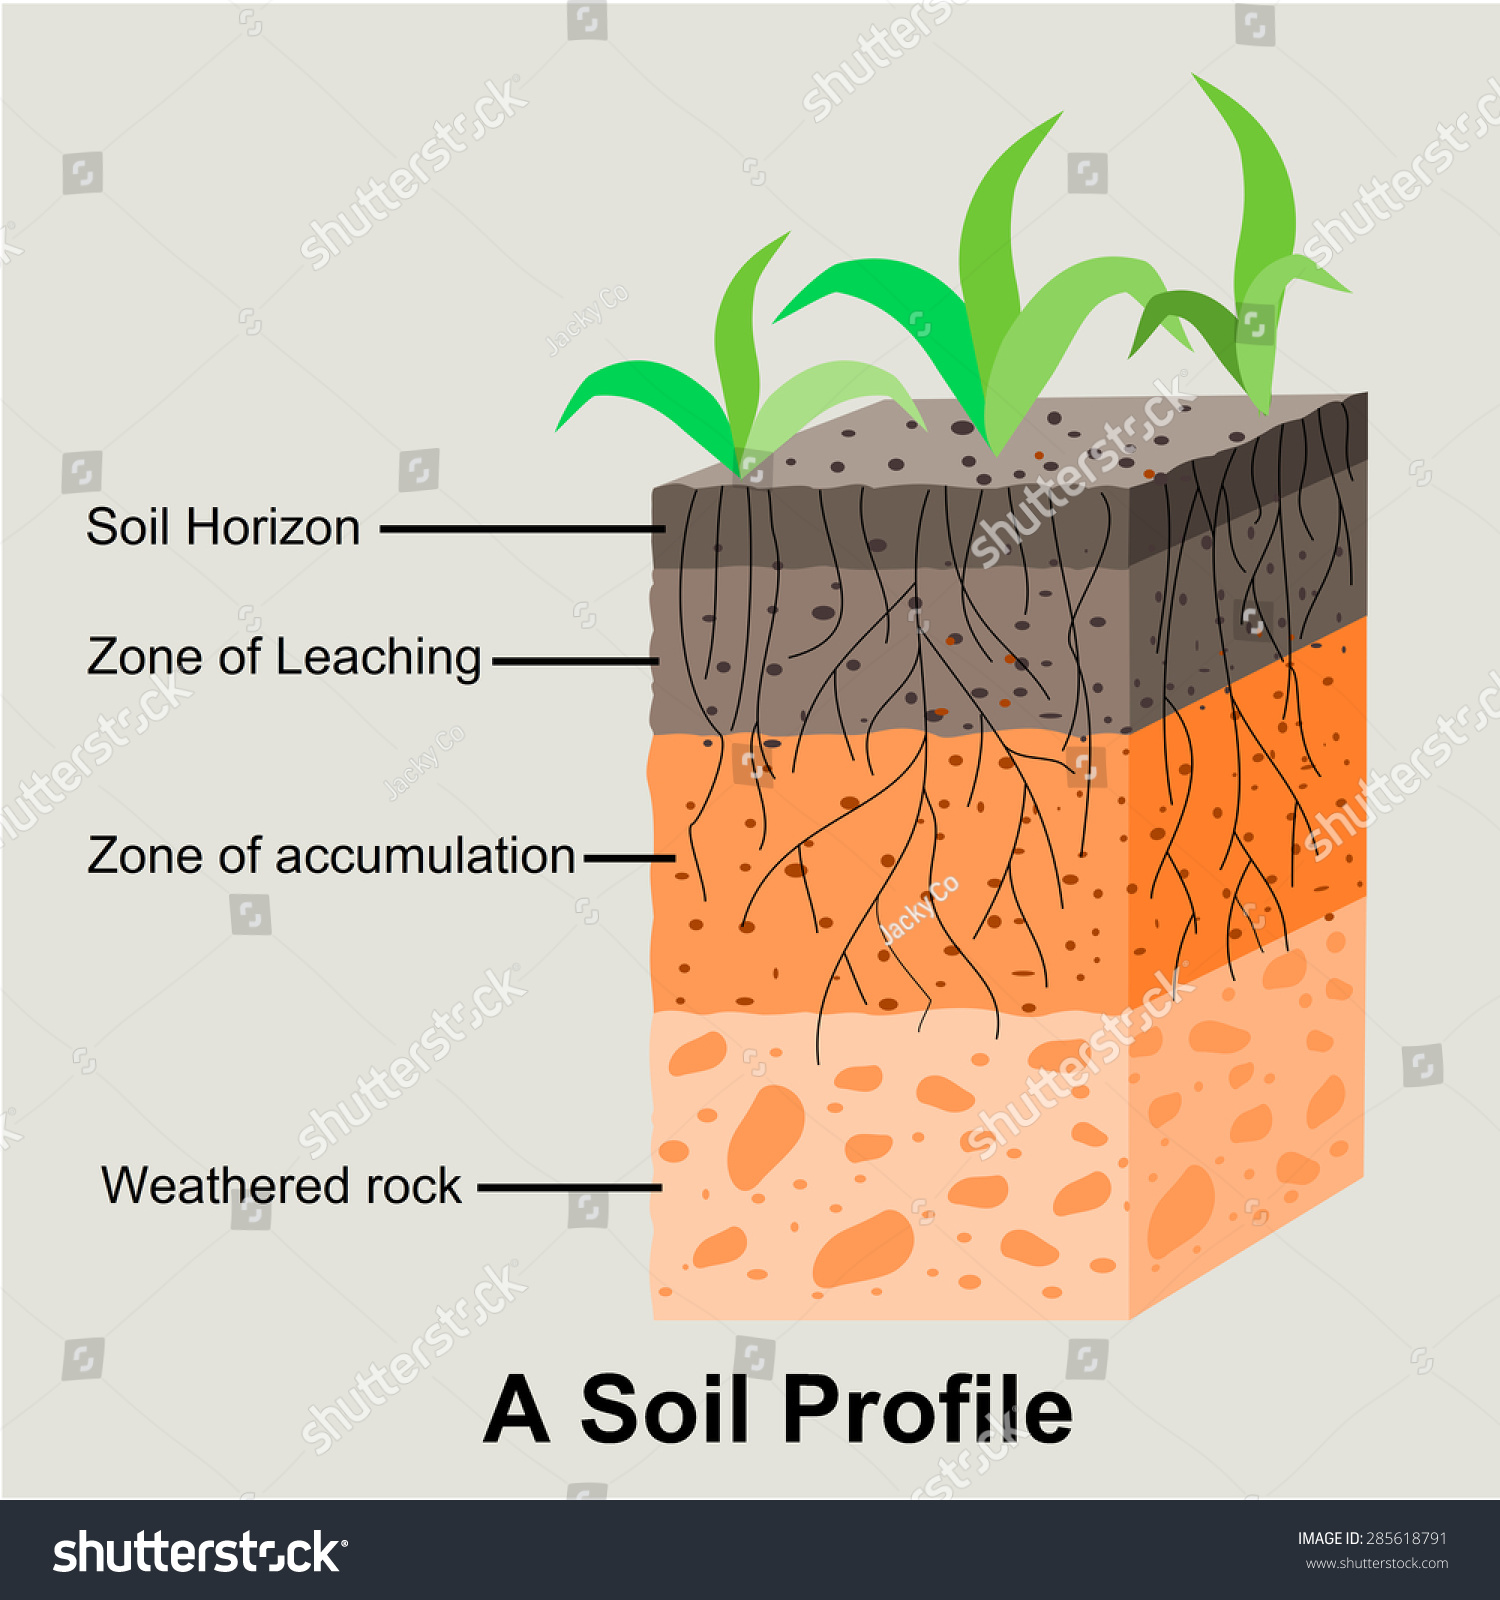 soil profile diagram of michigan acura integra wiring royalty free formation and horizons 285618791